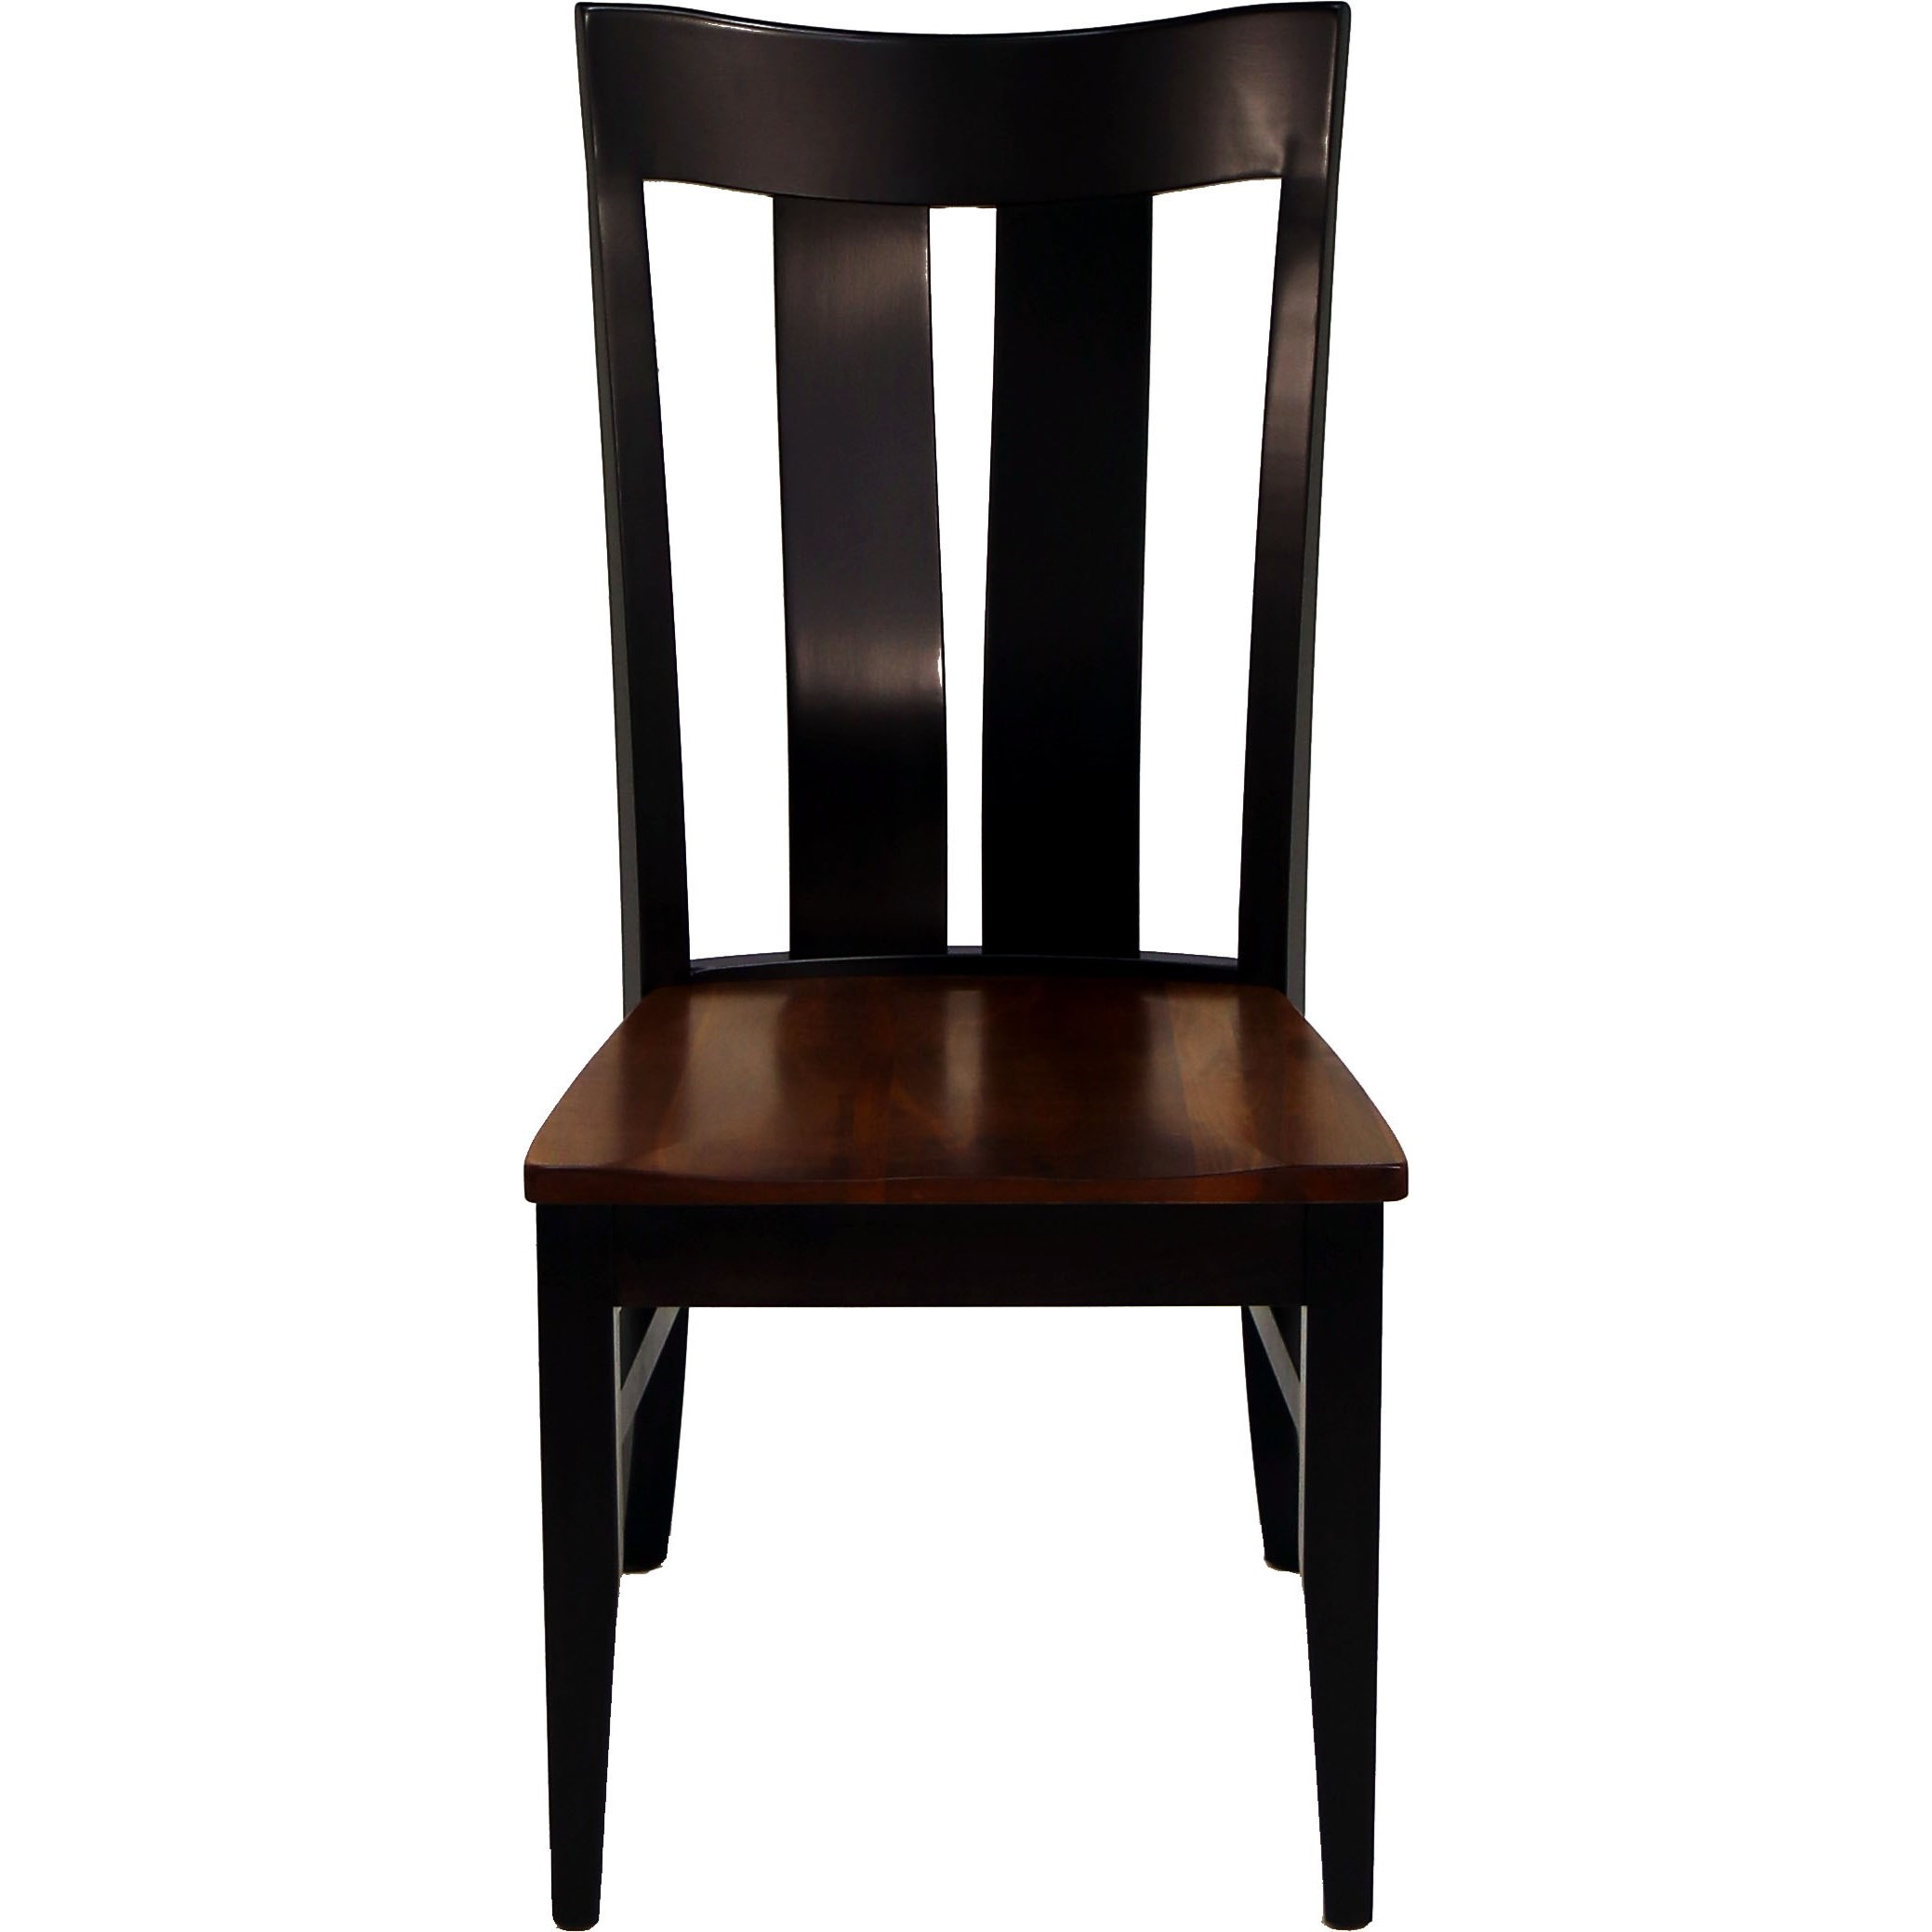 Amish Essentials Florence Chair by Archbold Furniture at Novello Home Furnishings